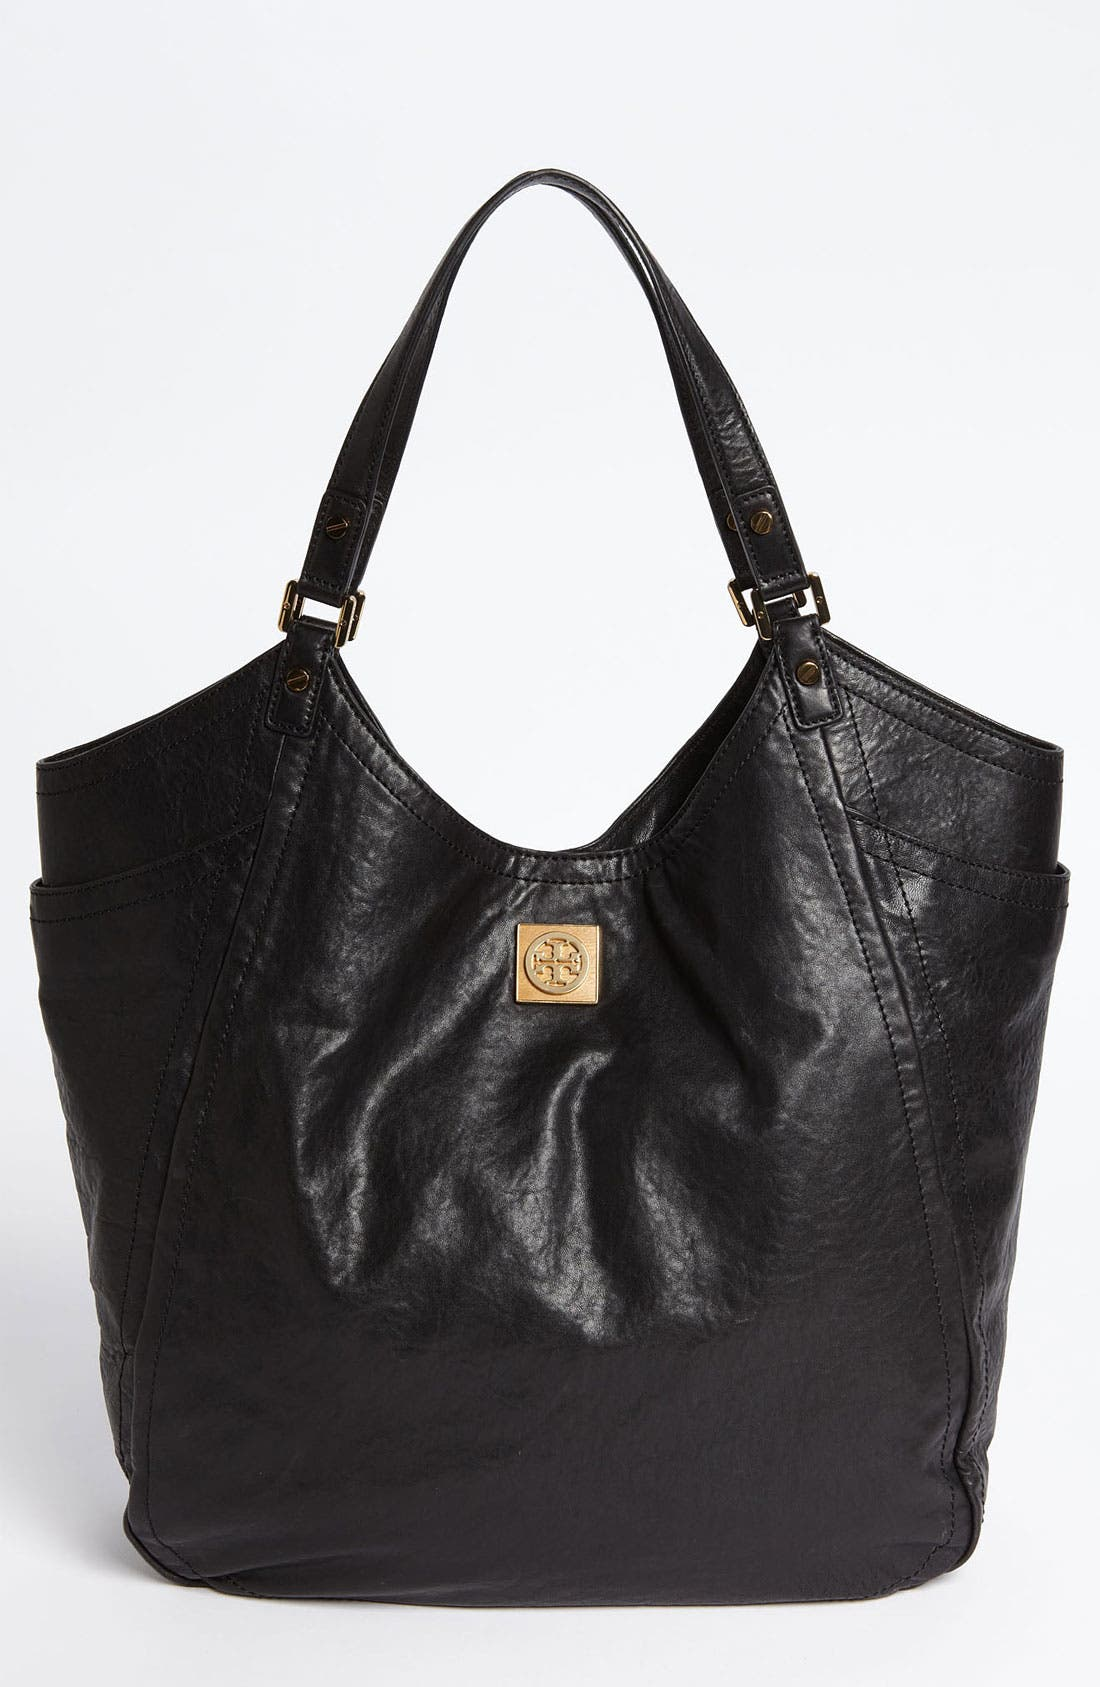 Alternate Image 1 Selected - Tory Burch 'Louiisa - Slouchy' Leather Tote